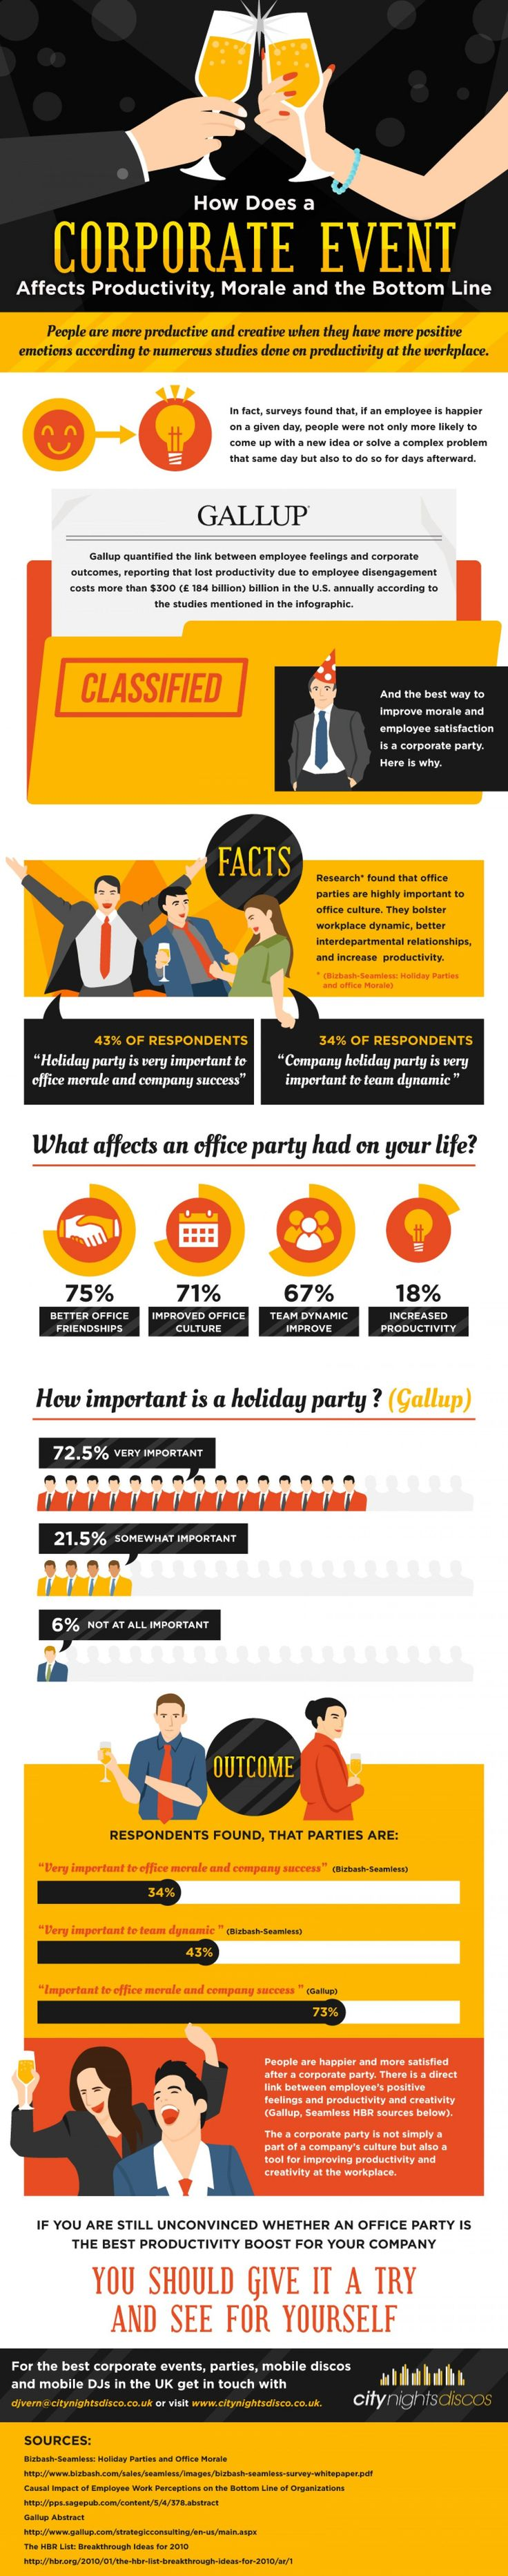 How Does A Corporate Event Affects Productivity